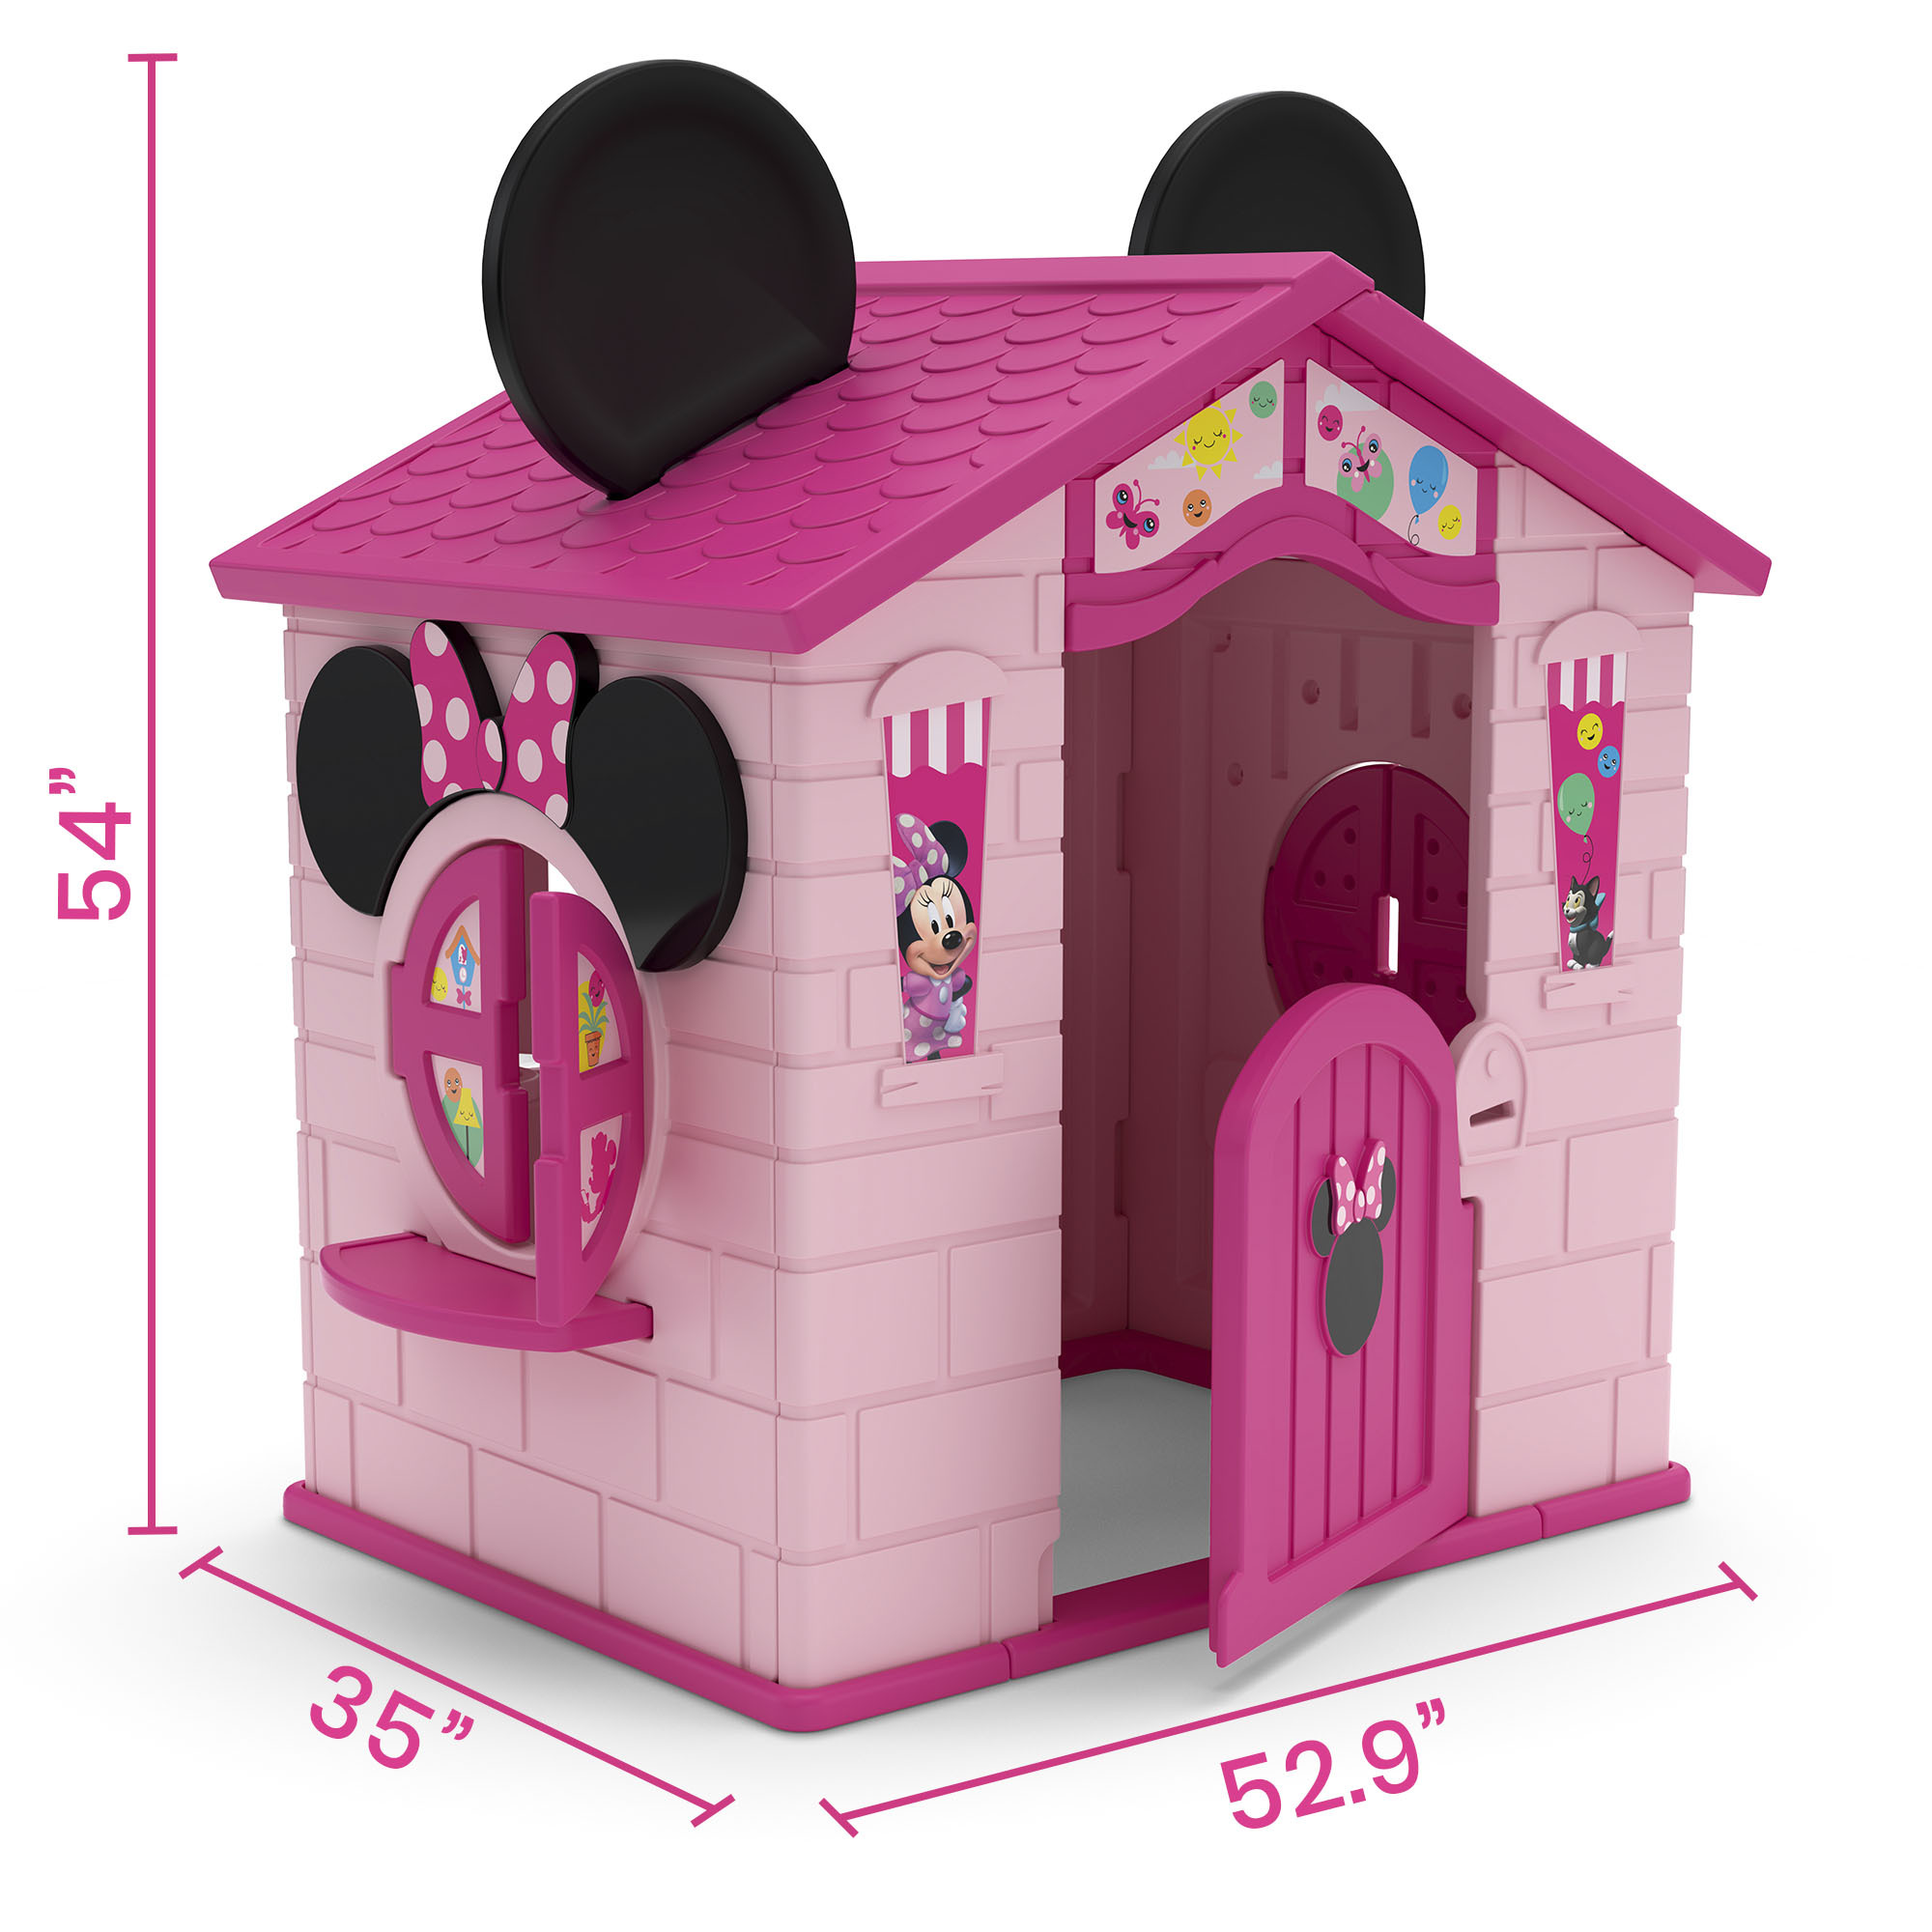 Disney Minnie Mouse Plastic Indoor Outdoor Playhouse With Easy Assembly By Delta Children Walmart Com Walmart Com